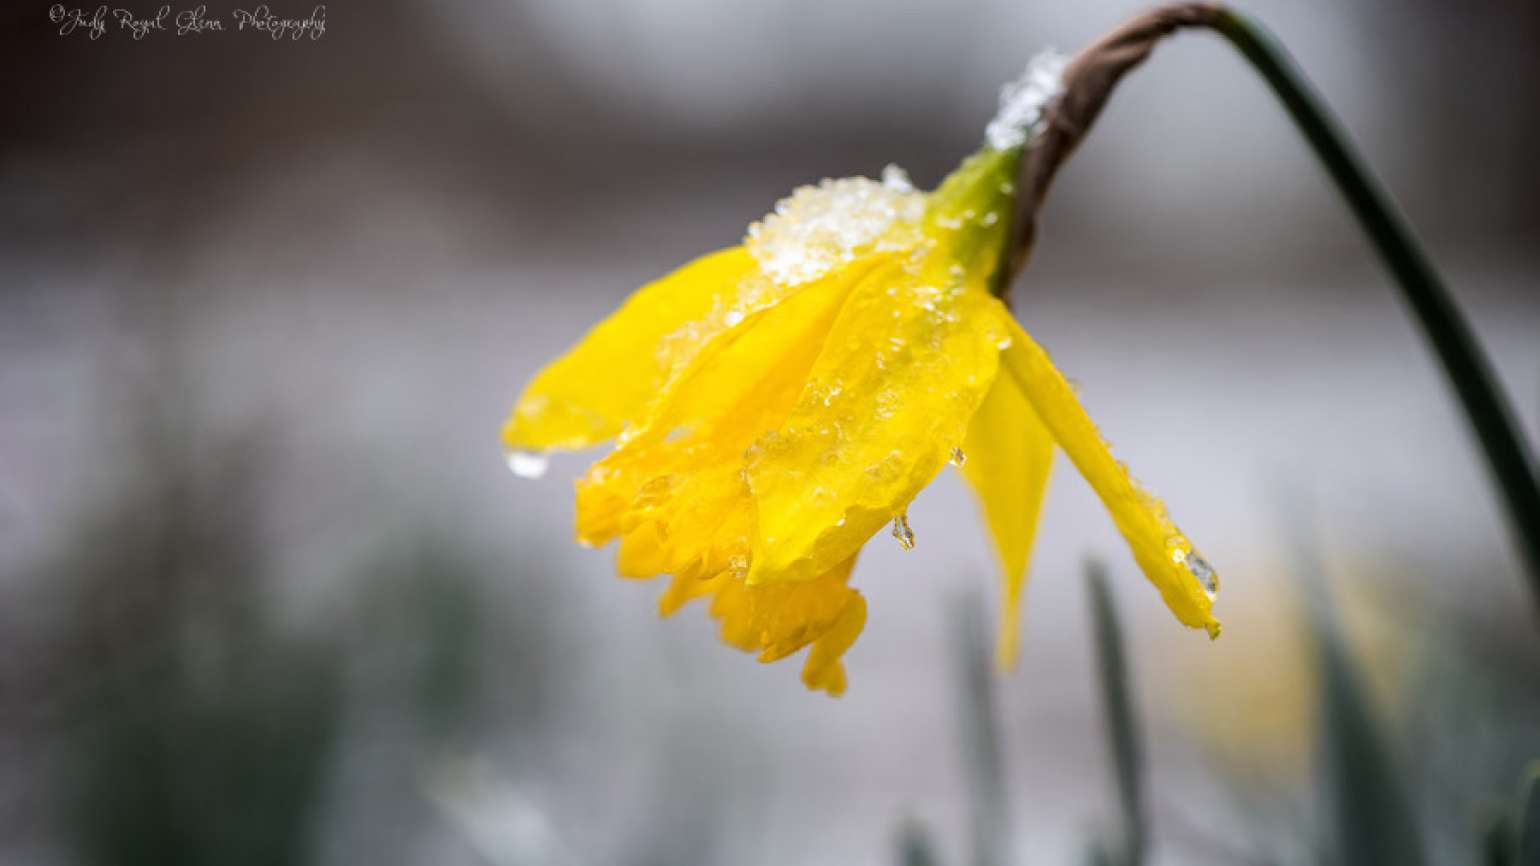 Drooping daffodil in the snow. Photo by Judy Royal Glenn.